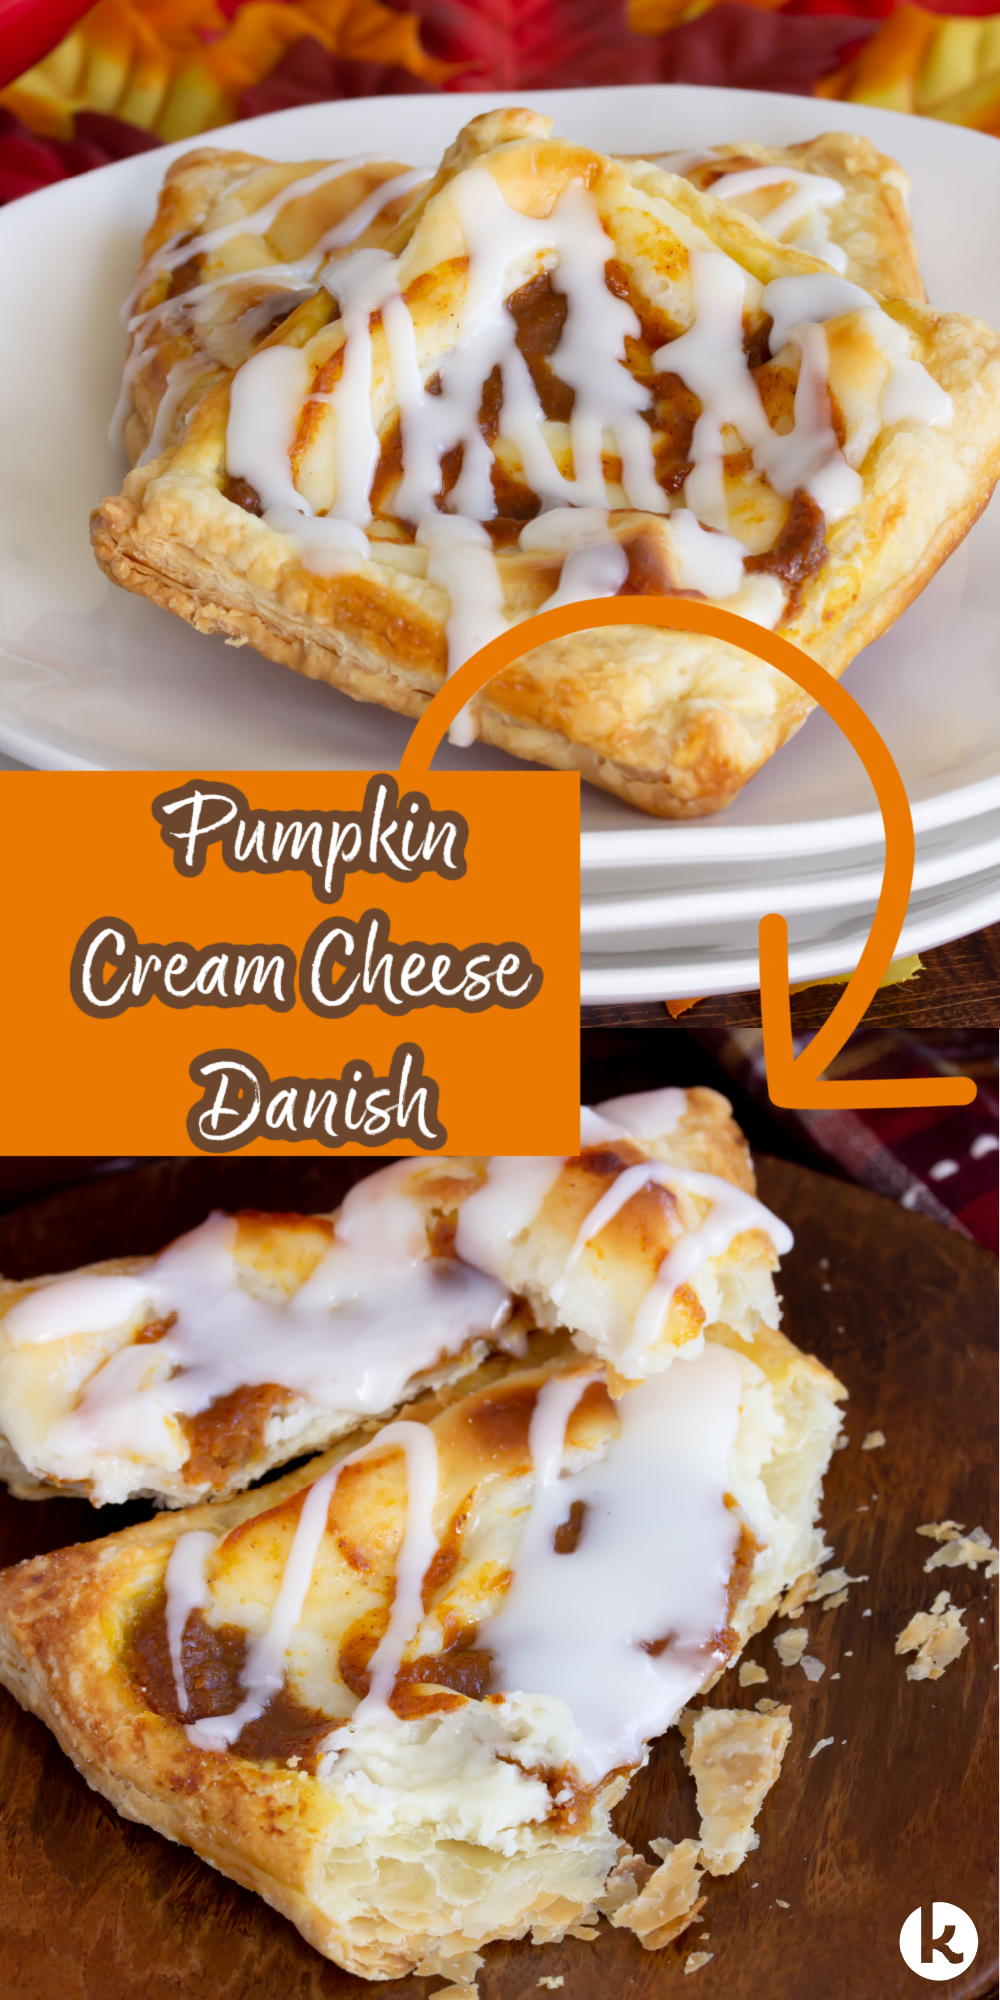 My Pumpkin Cream Cheese Danish recipe is finished in under 30 minutes! Enjoy a mini Danish for breakfast or brunch- perfect for parties too!